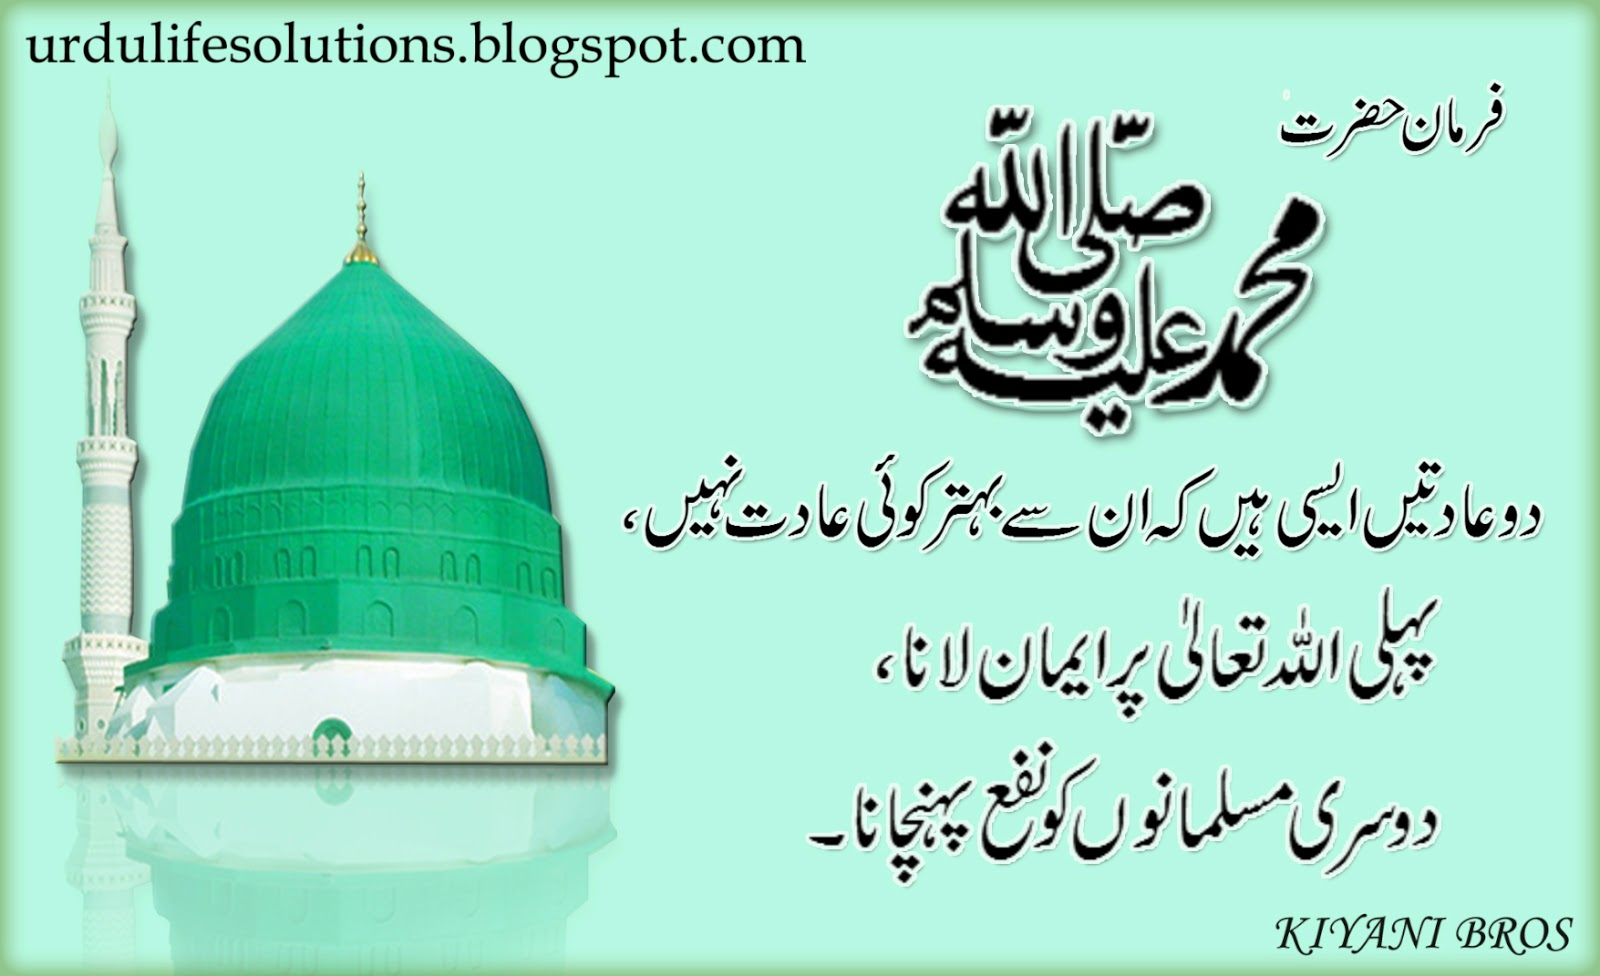 hazrat muhammad saw was an exemplary judge Muhammad (pbuh) was a teacher, a social reformer, a moral guide, an administrative colossus, a faithful friend, a wonderful companion, a devoted husband, a loving father- all in one the holy prophet hazrat muhammad (saw) strove to convey the key principles of islam to his companions.